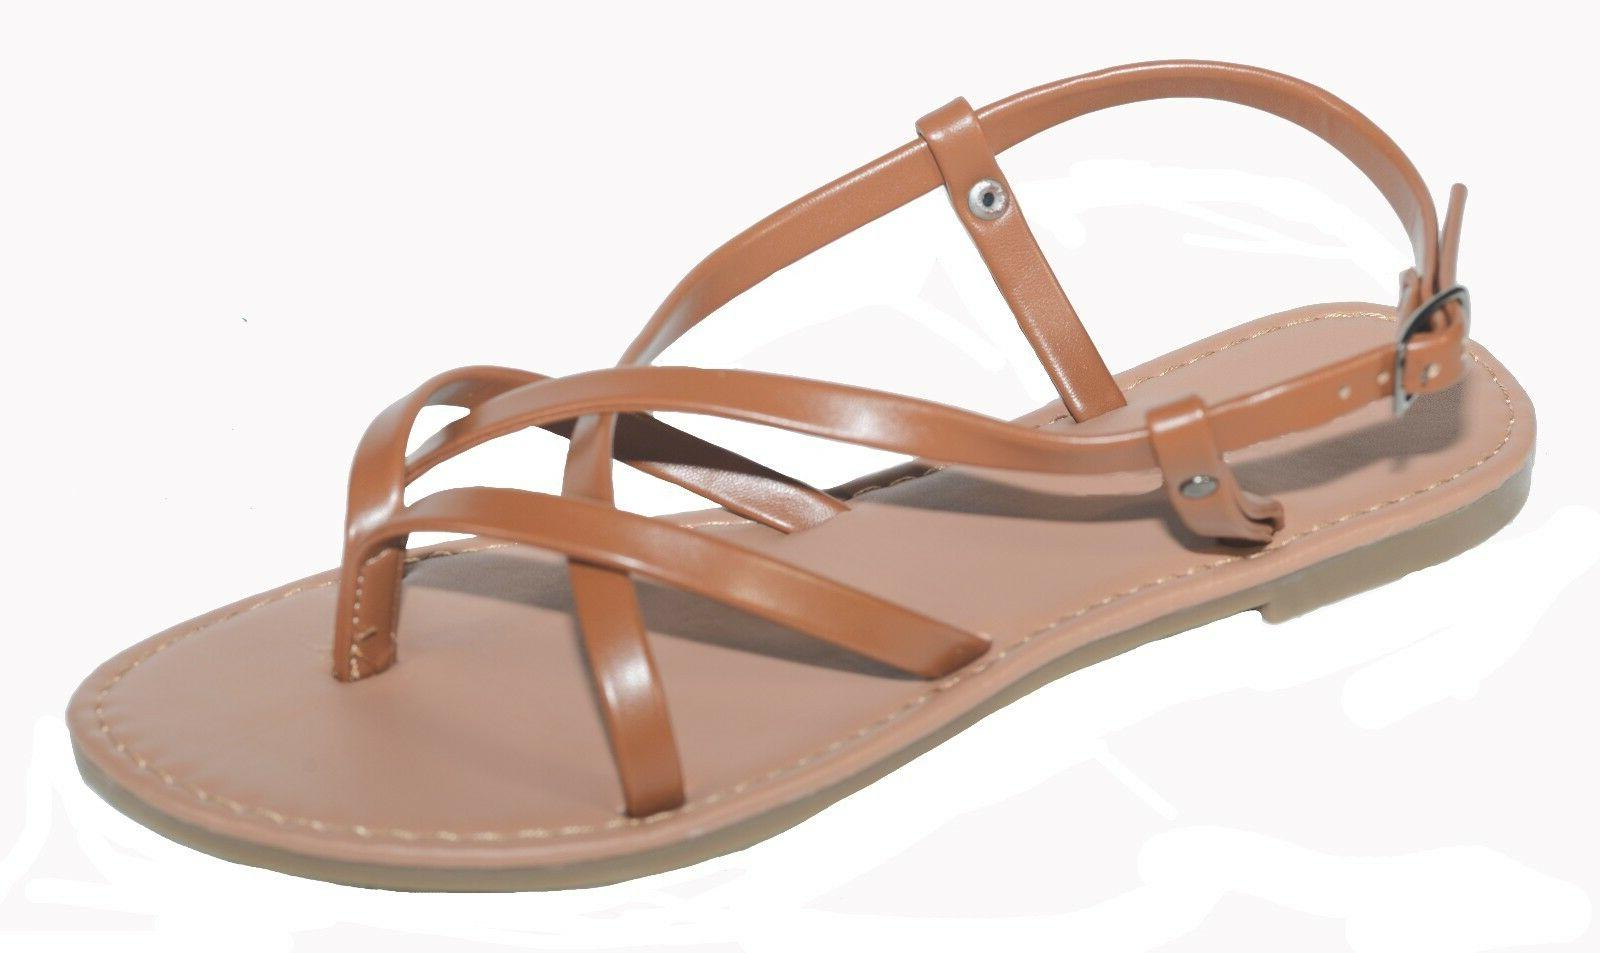 New Gladiator Sandals Shoes Thong Strap Flip